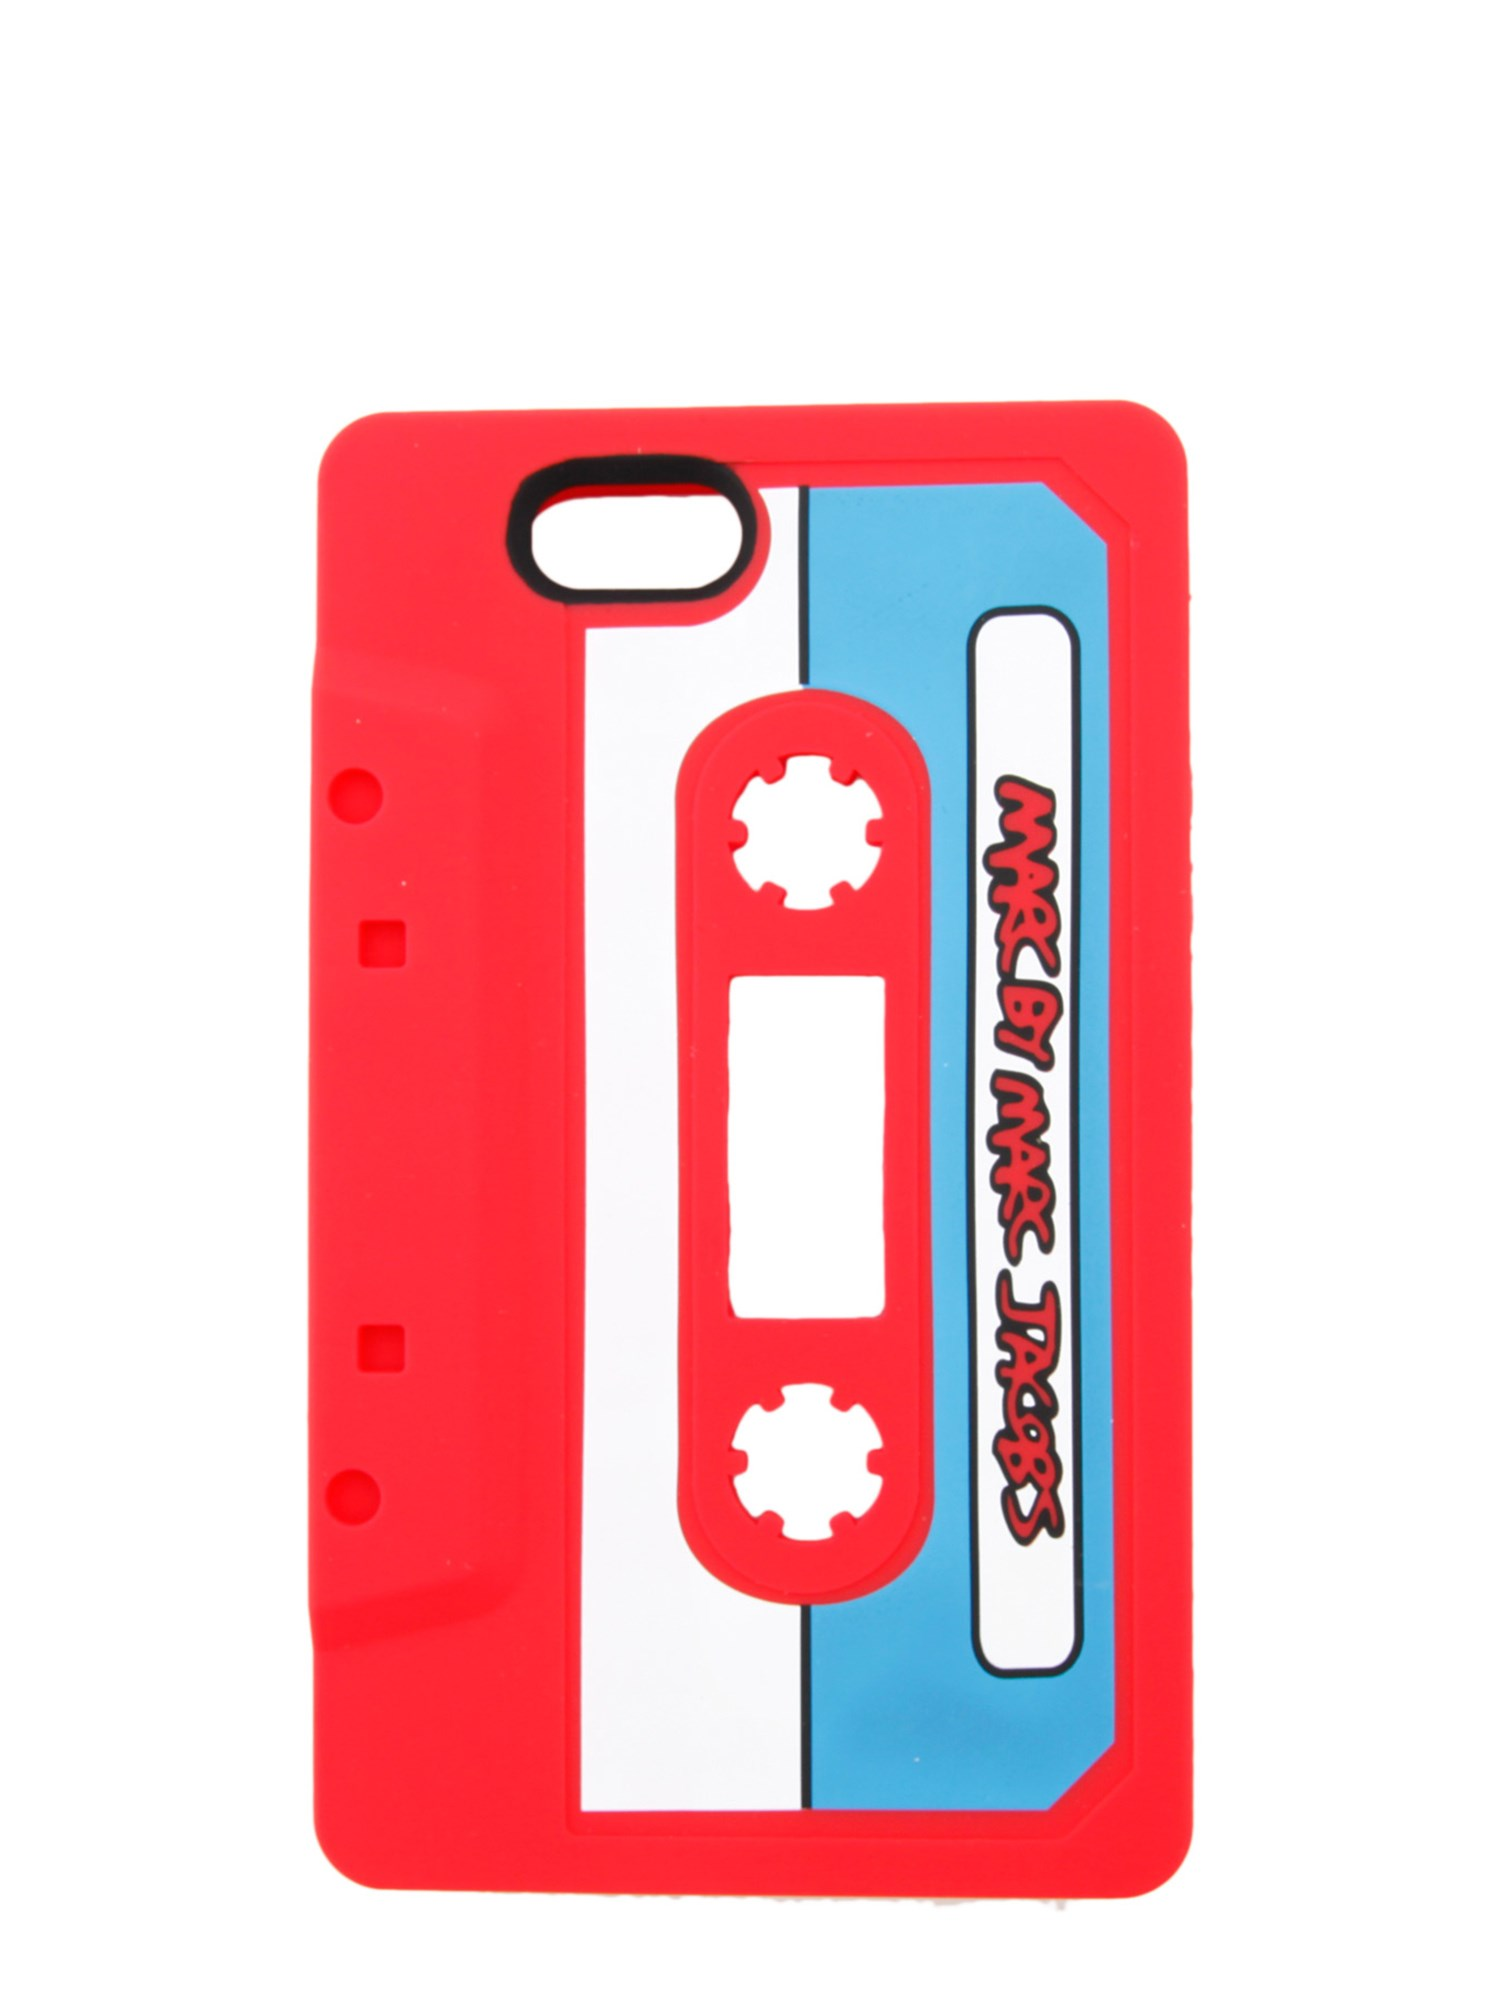 Marc by marc jacobs i-phone 5 case - marc by marc jacobs - Modalova